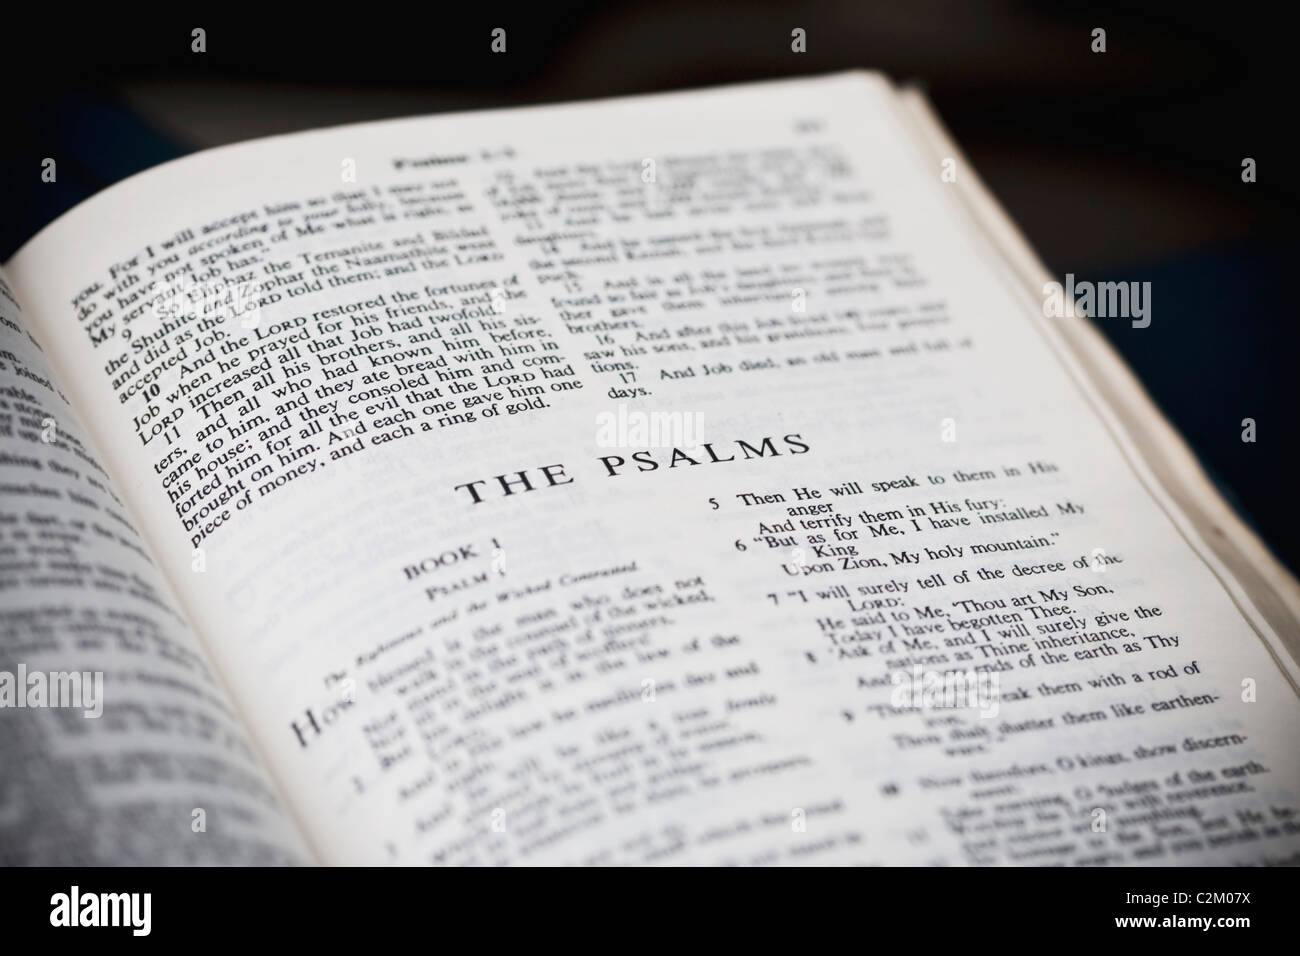 The New American Standard Bible Open To The Psalms Stock Photo